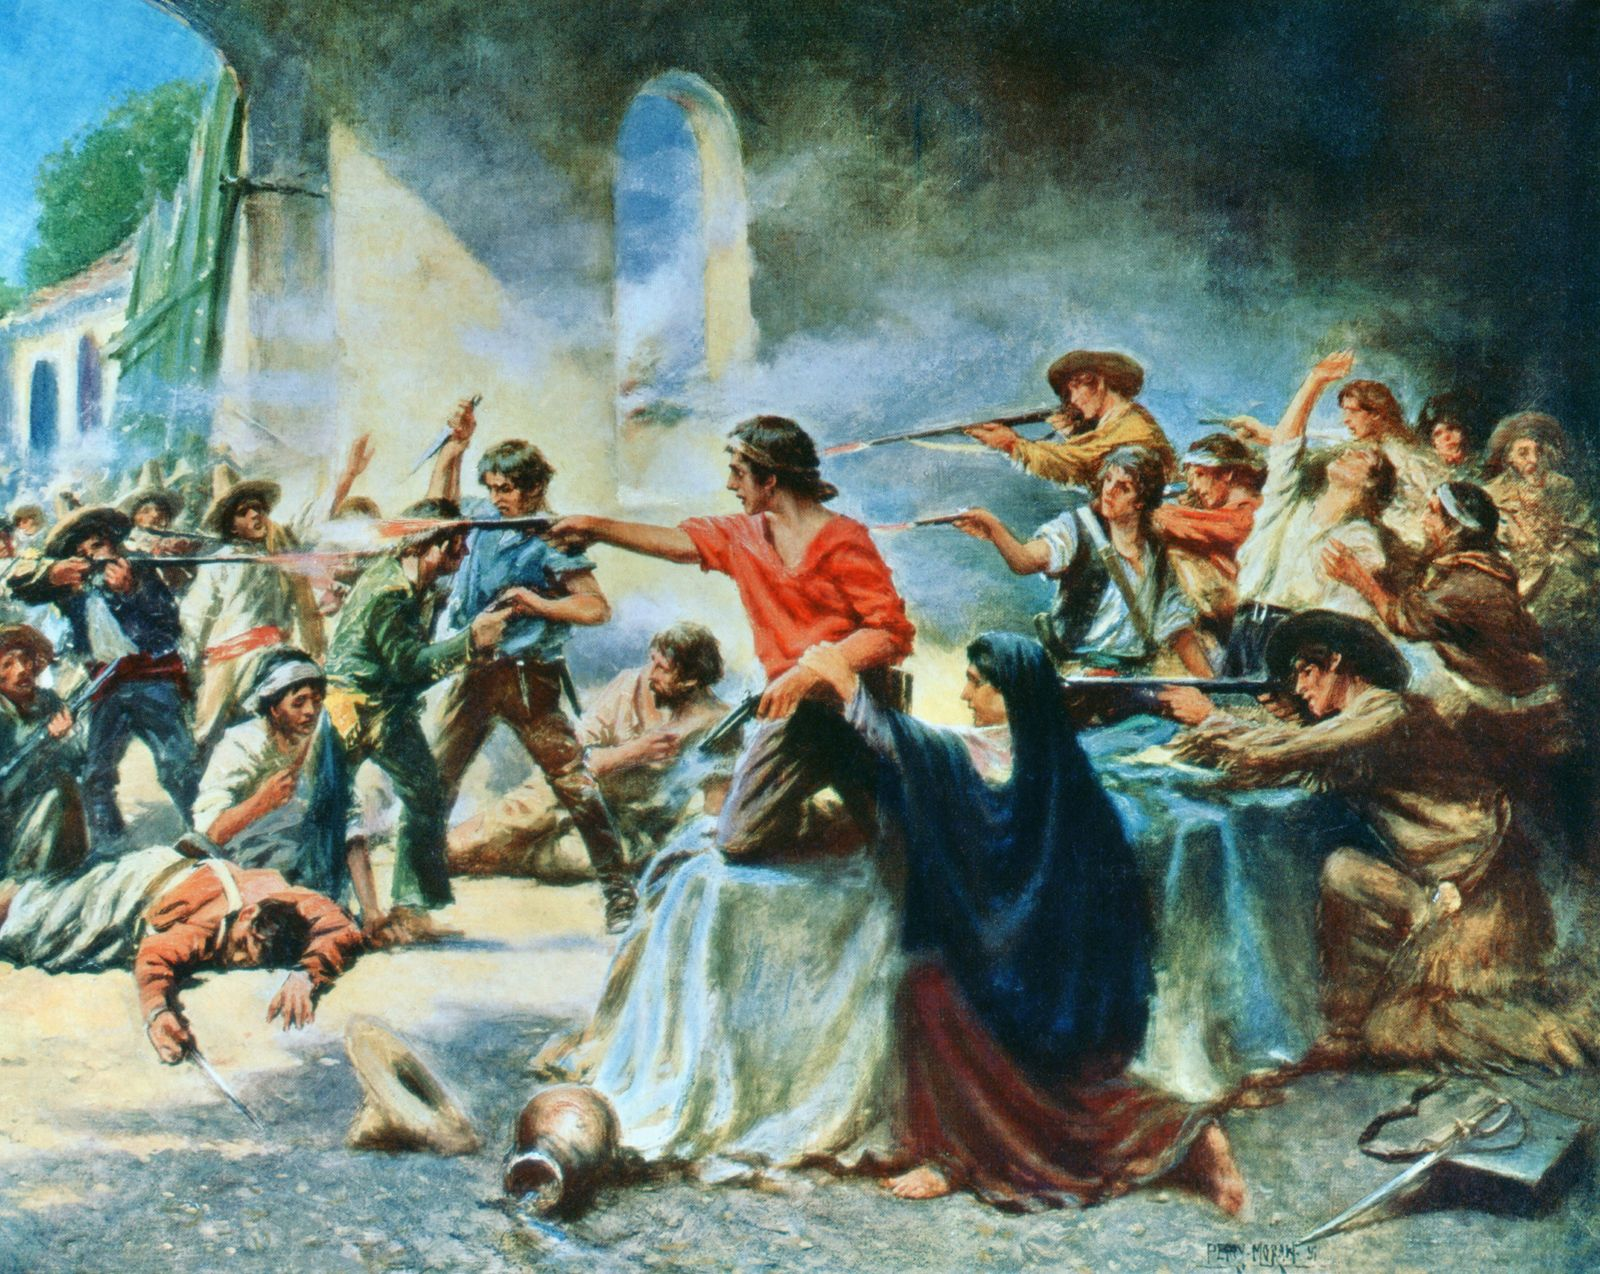 The Battle of the Alamo, during the Texas Revolution. After a work by E. Percy Moran. PUBLICATIONxINxGERxSUIxAUTxONLY Co